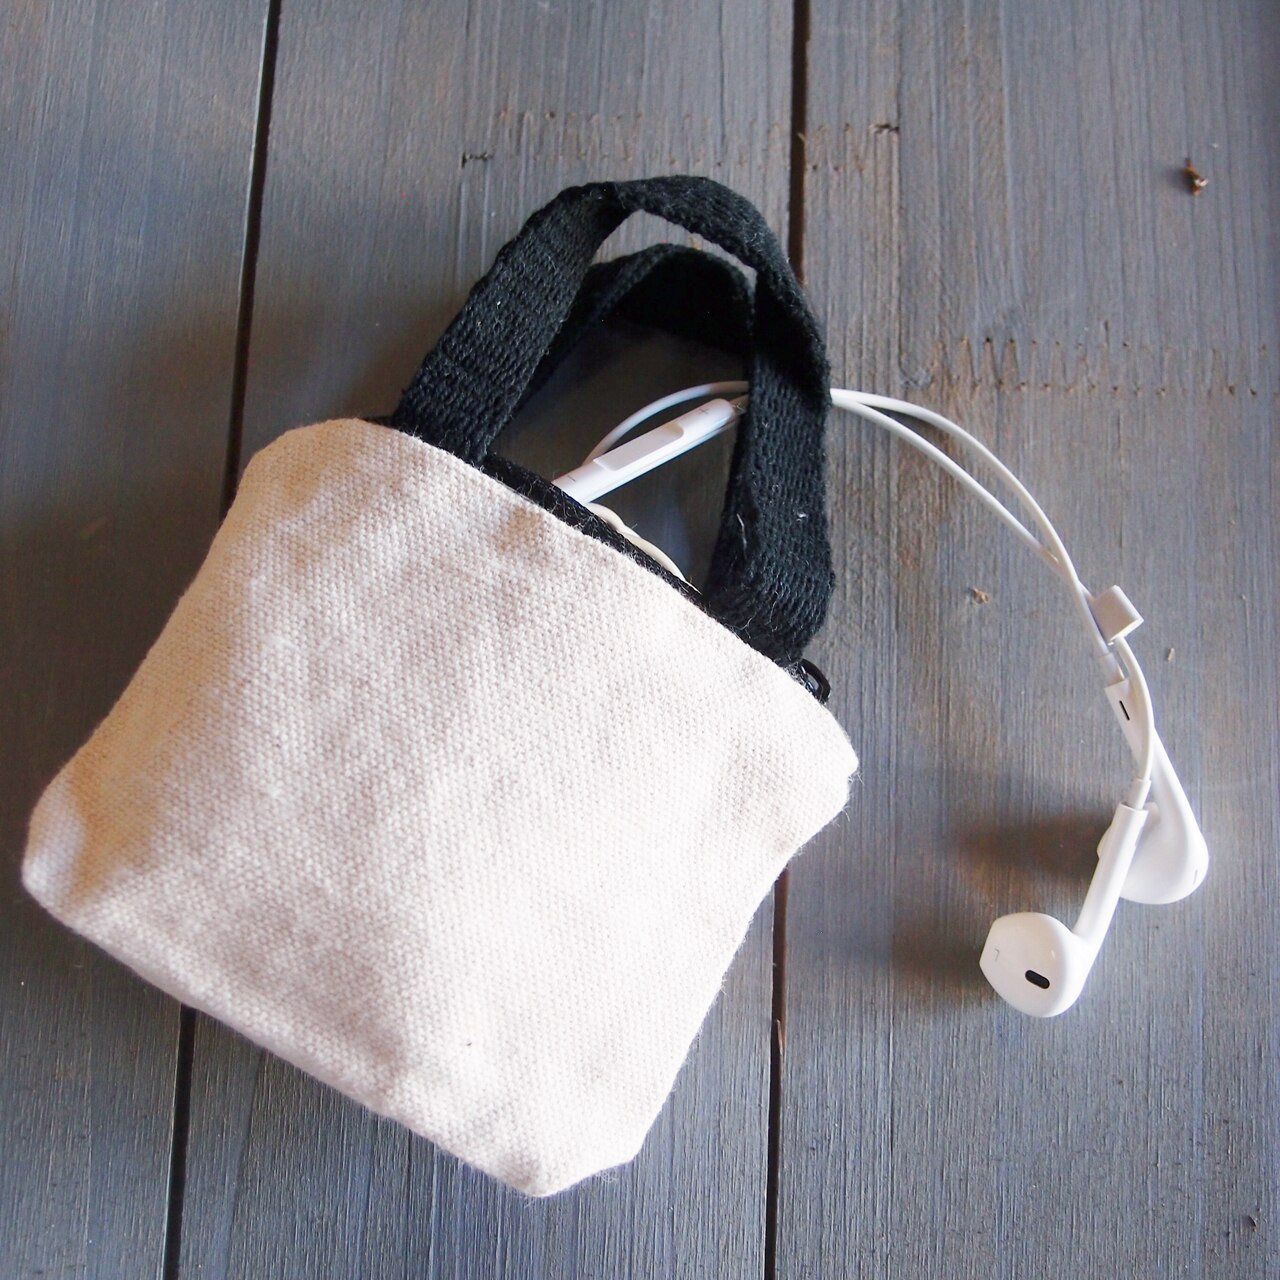 Natural Tiny Tote Zippered with Black Handles, B690-79. Buy wholesale mini tote bags and canvas shopping tote bags from Packaging Decor. Call (949) 833-7738.